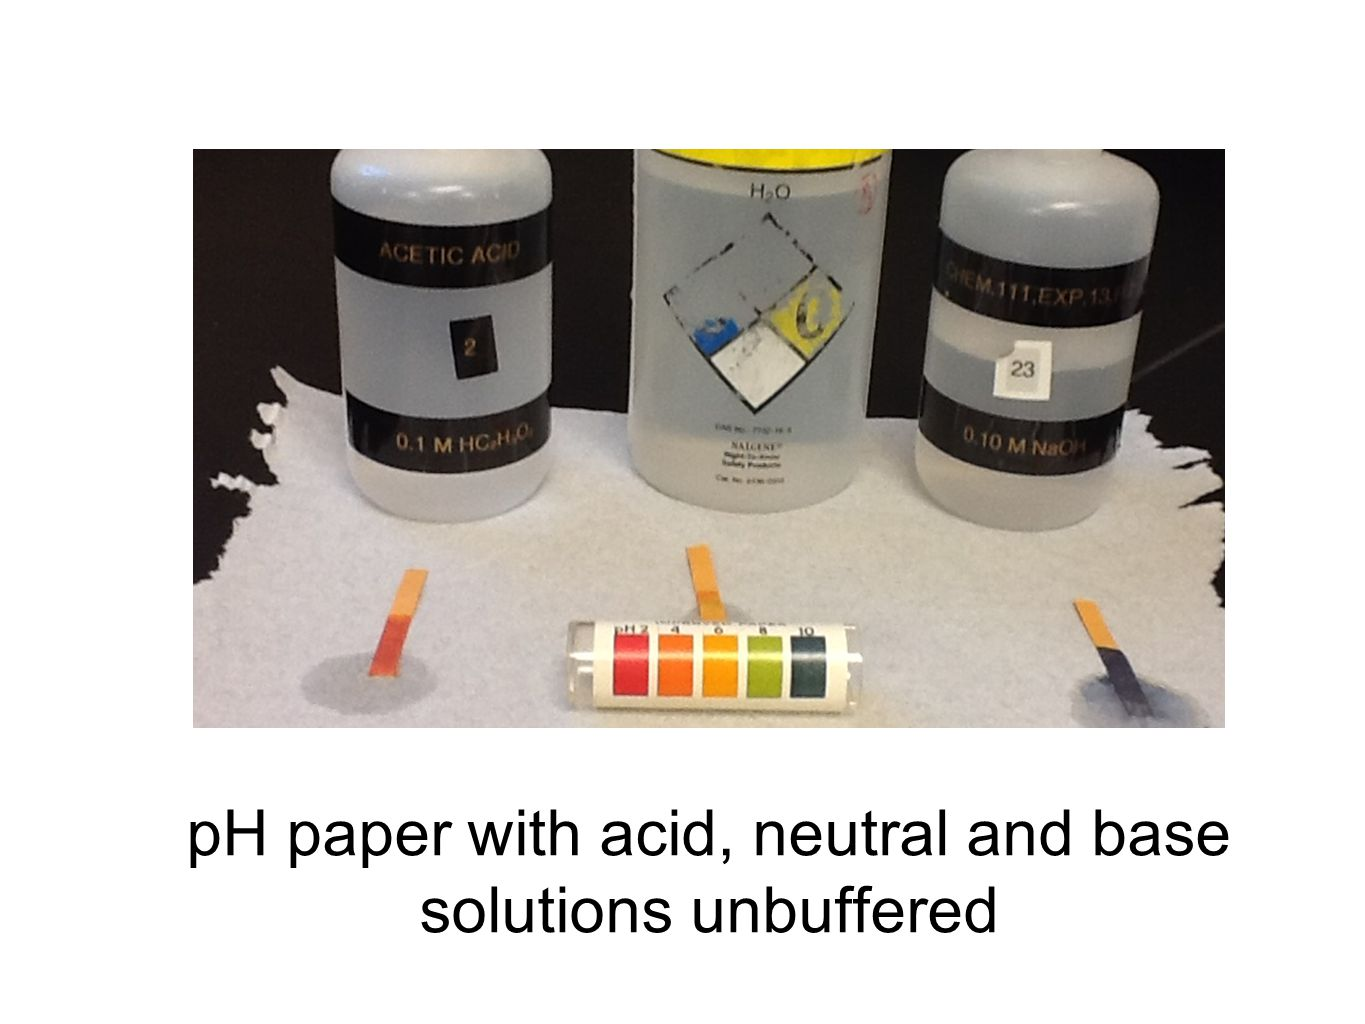 pH paper with acid, neutral and base solutions unbuffered